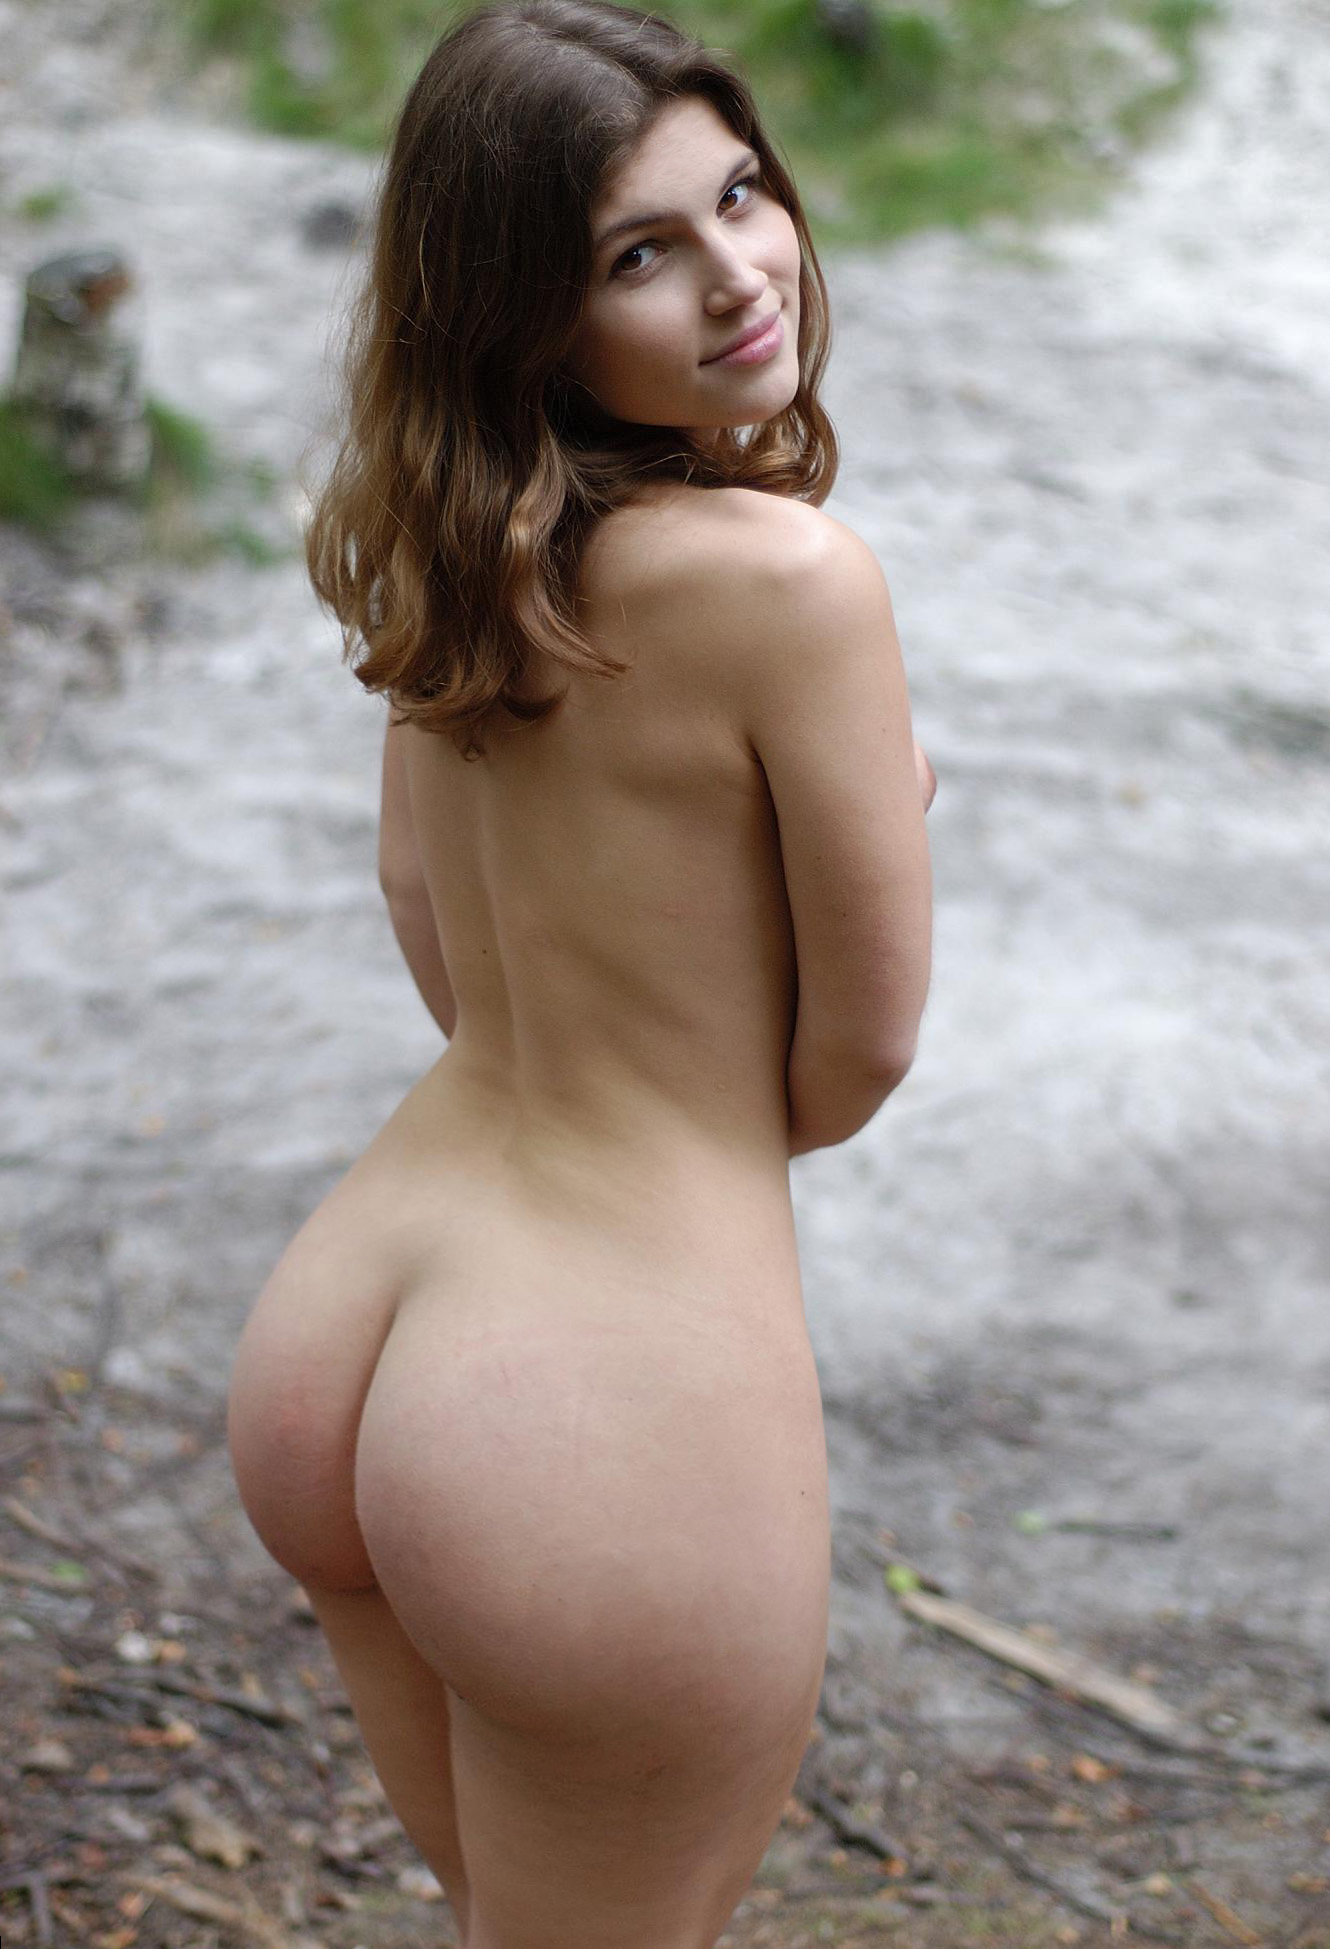 Nude Girl Big Butt